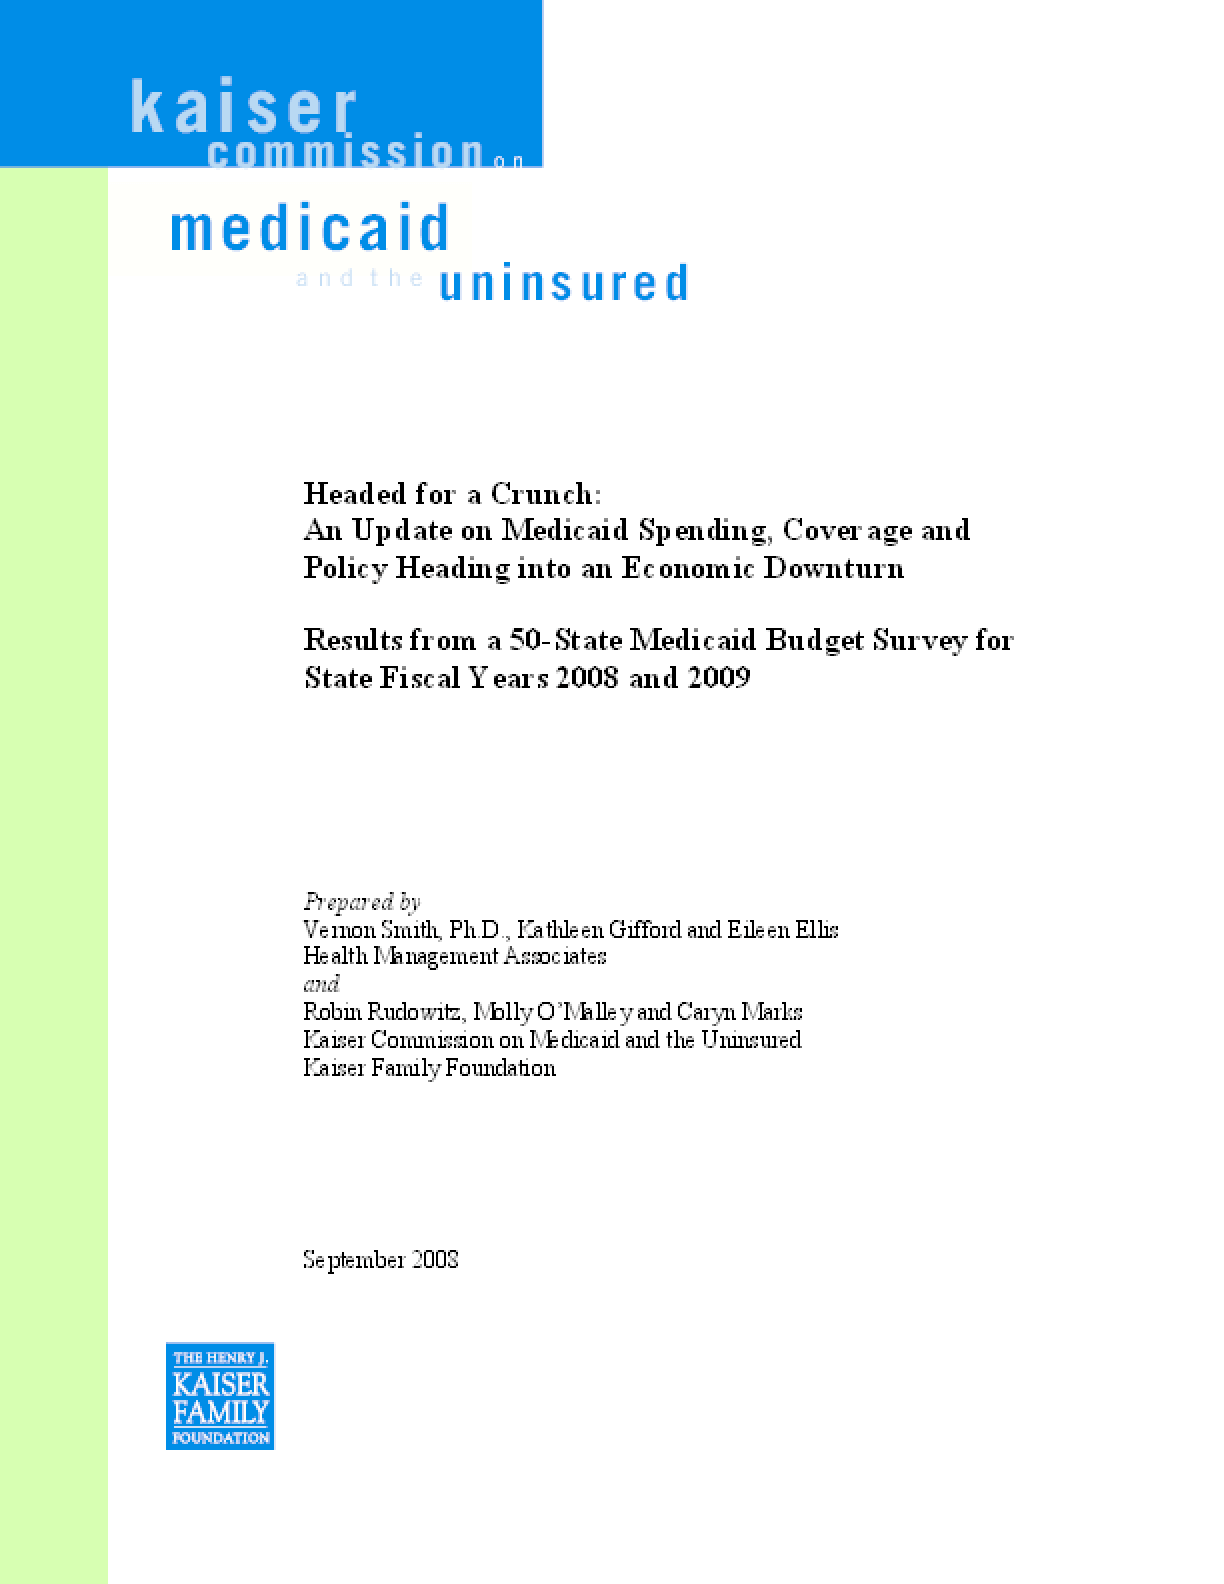 Headed for a Crunch: An Update on Medicaid Spending, Coverage and Policy Heading Into an Economic Downturn